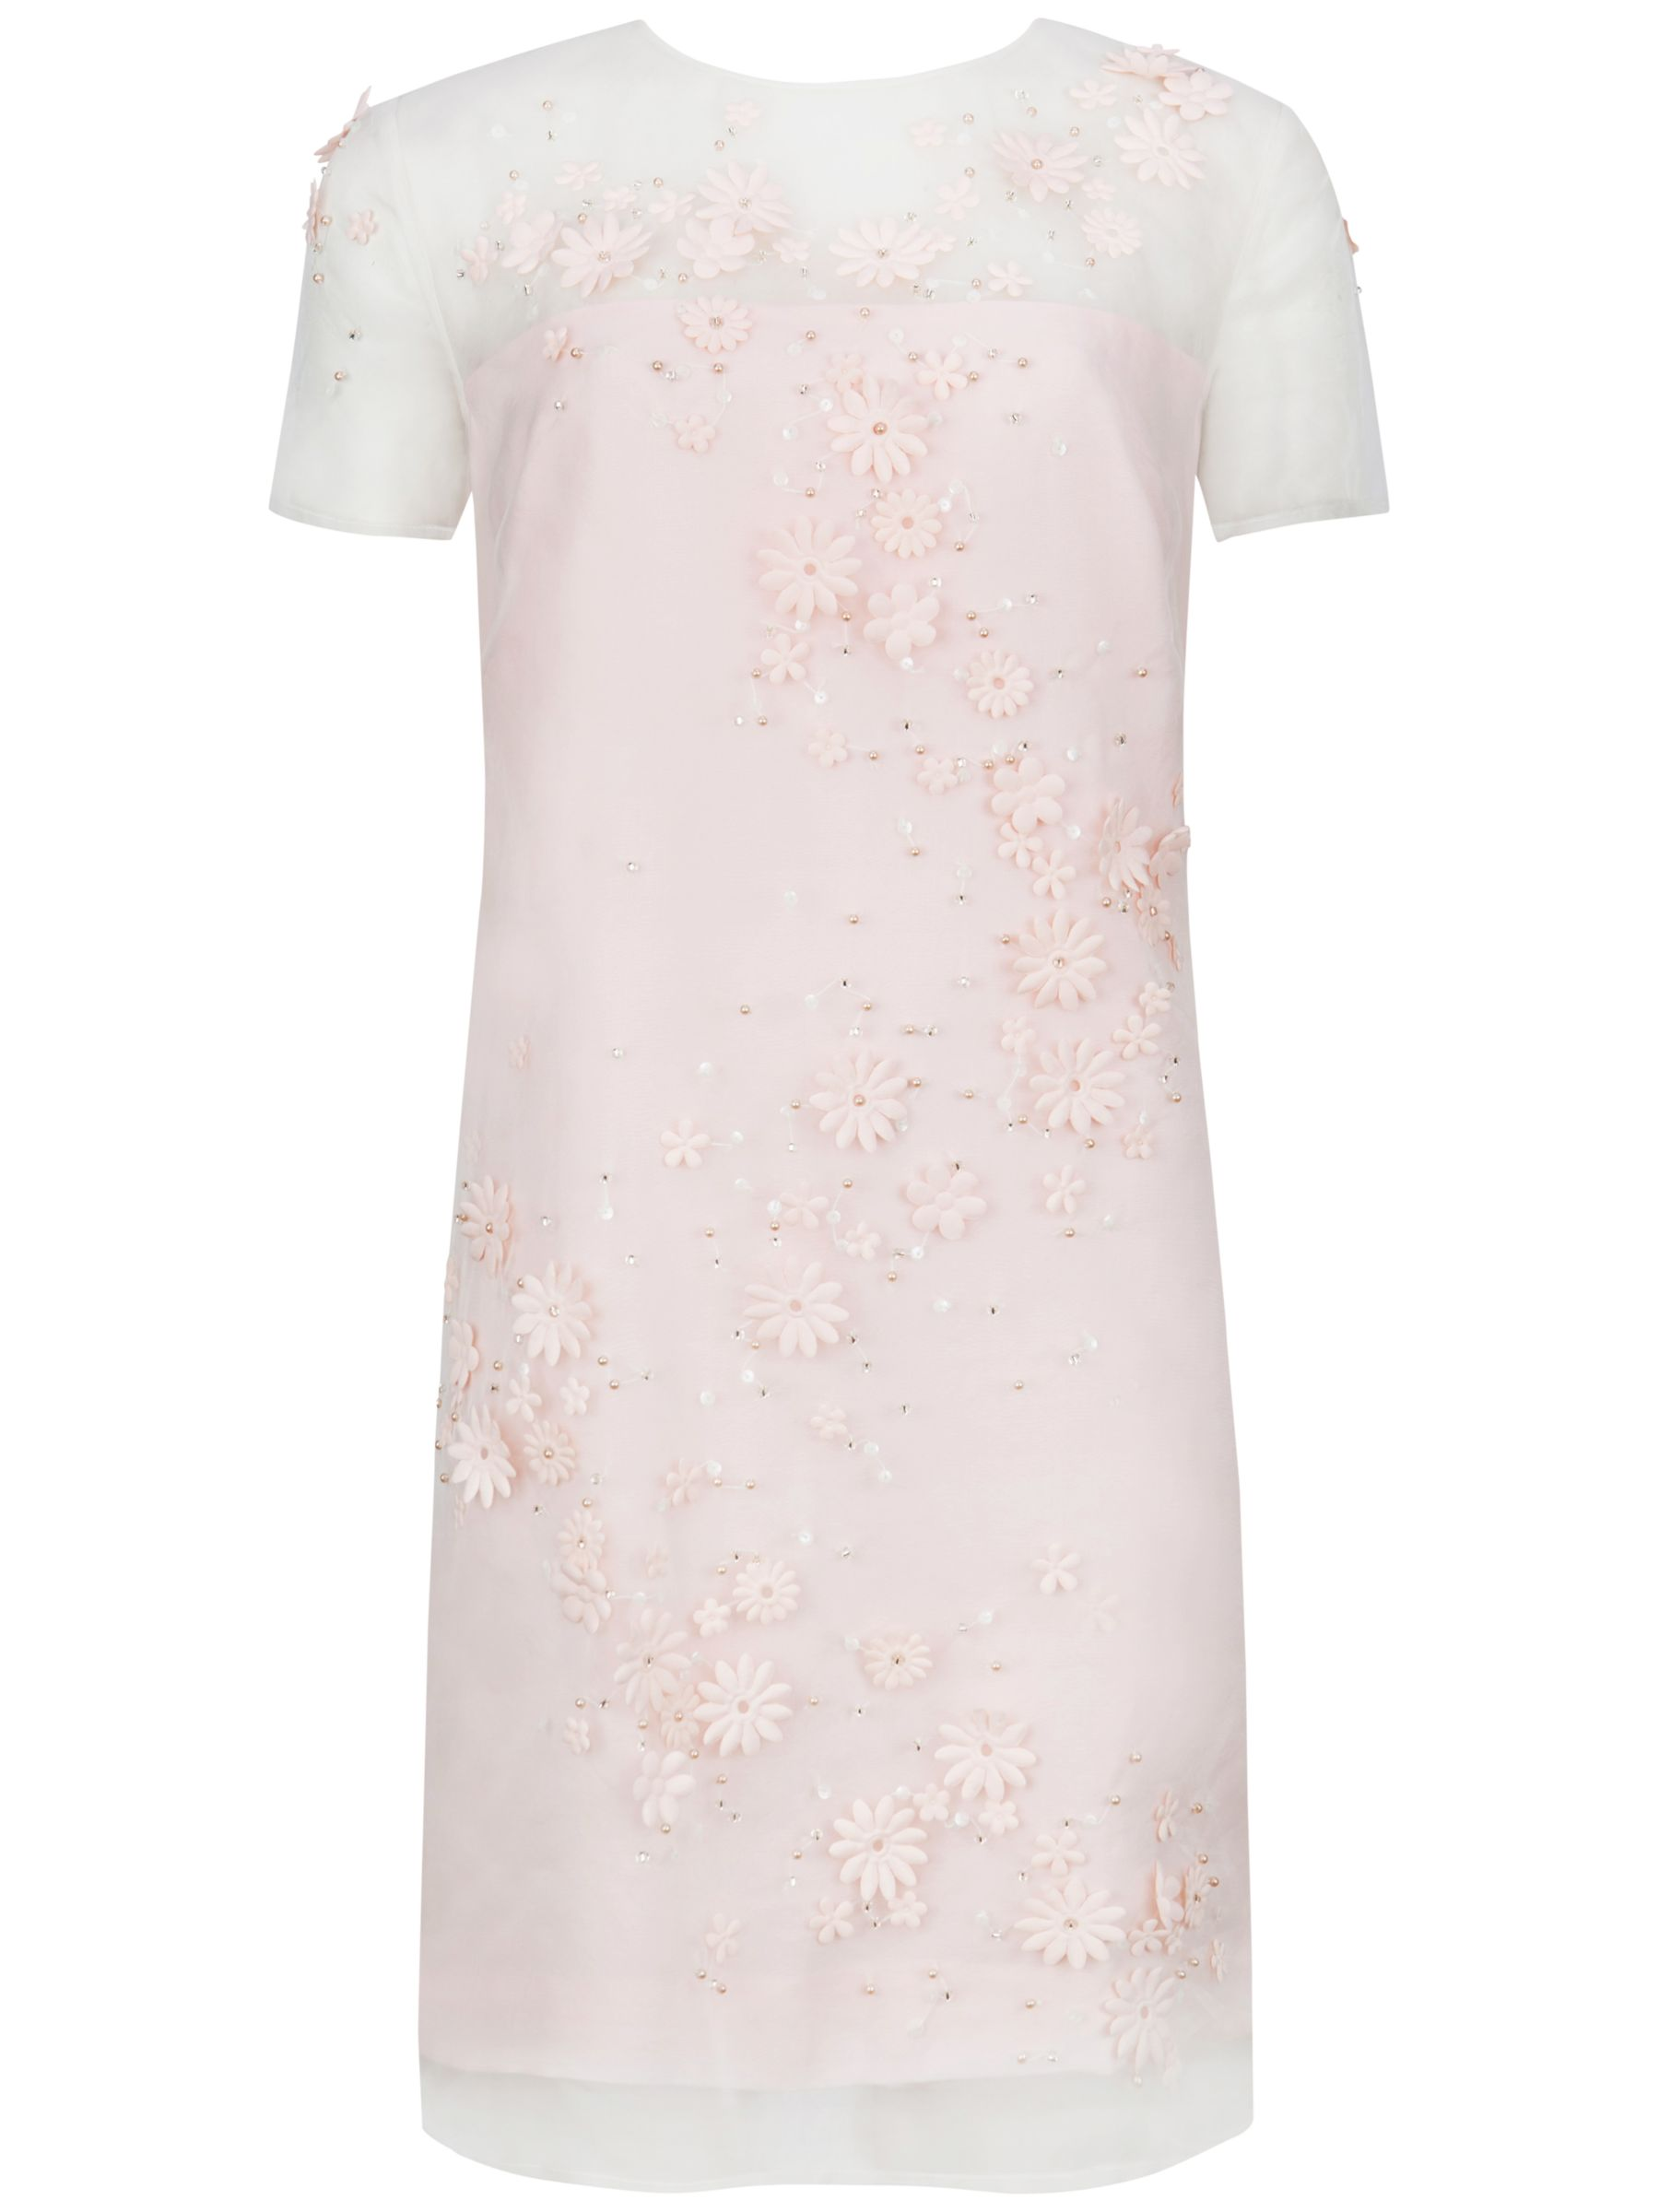 ted baker findon embellished floral tunic dress nude pink, ted, baker, findon, embellished, floral, tunic, dress, nude, pink, ted baker, 1|0|3|4|2|5, women, womens dresses, fashion magazine, womenswear, men, brands l-z, 1901289